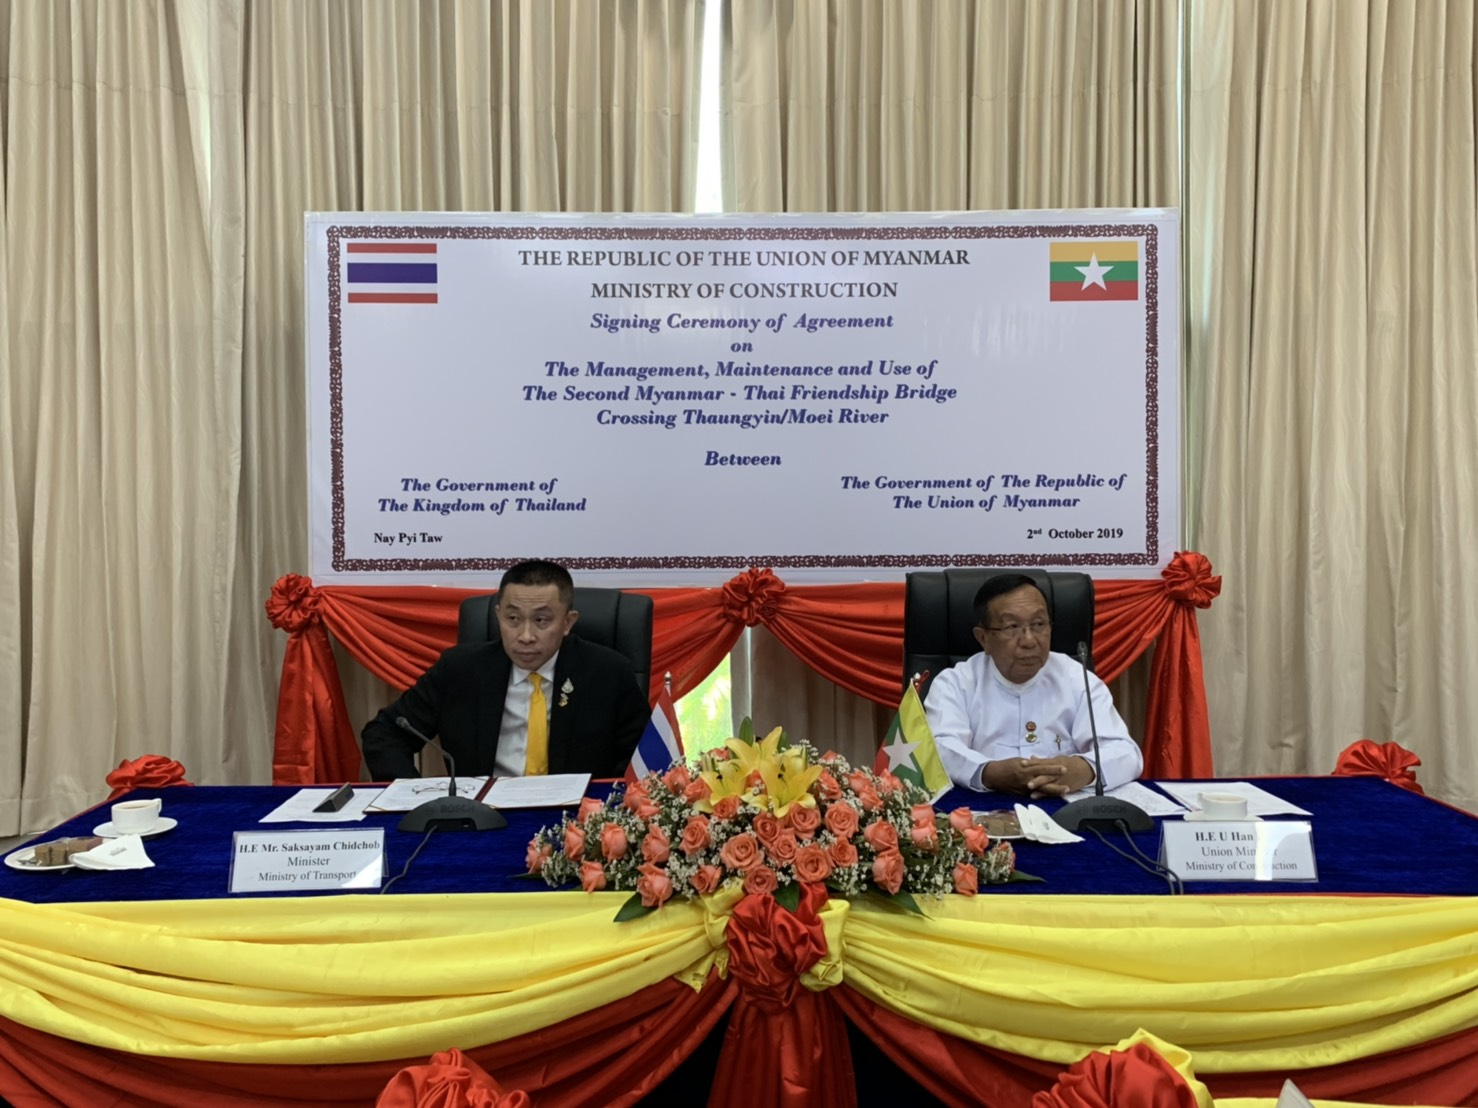 Minister of Transport of Thailand signed the MoU on The Management, Maintenance and Use of the Second Myanmar - Thai Friendship Bridge Crossing Thaungyin/Moei River